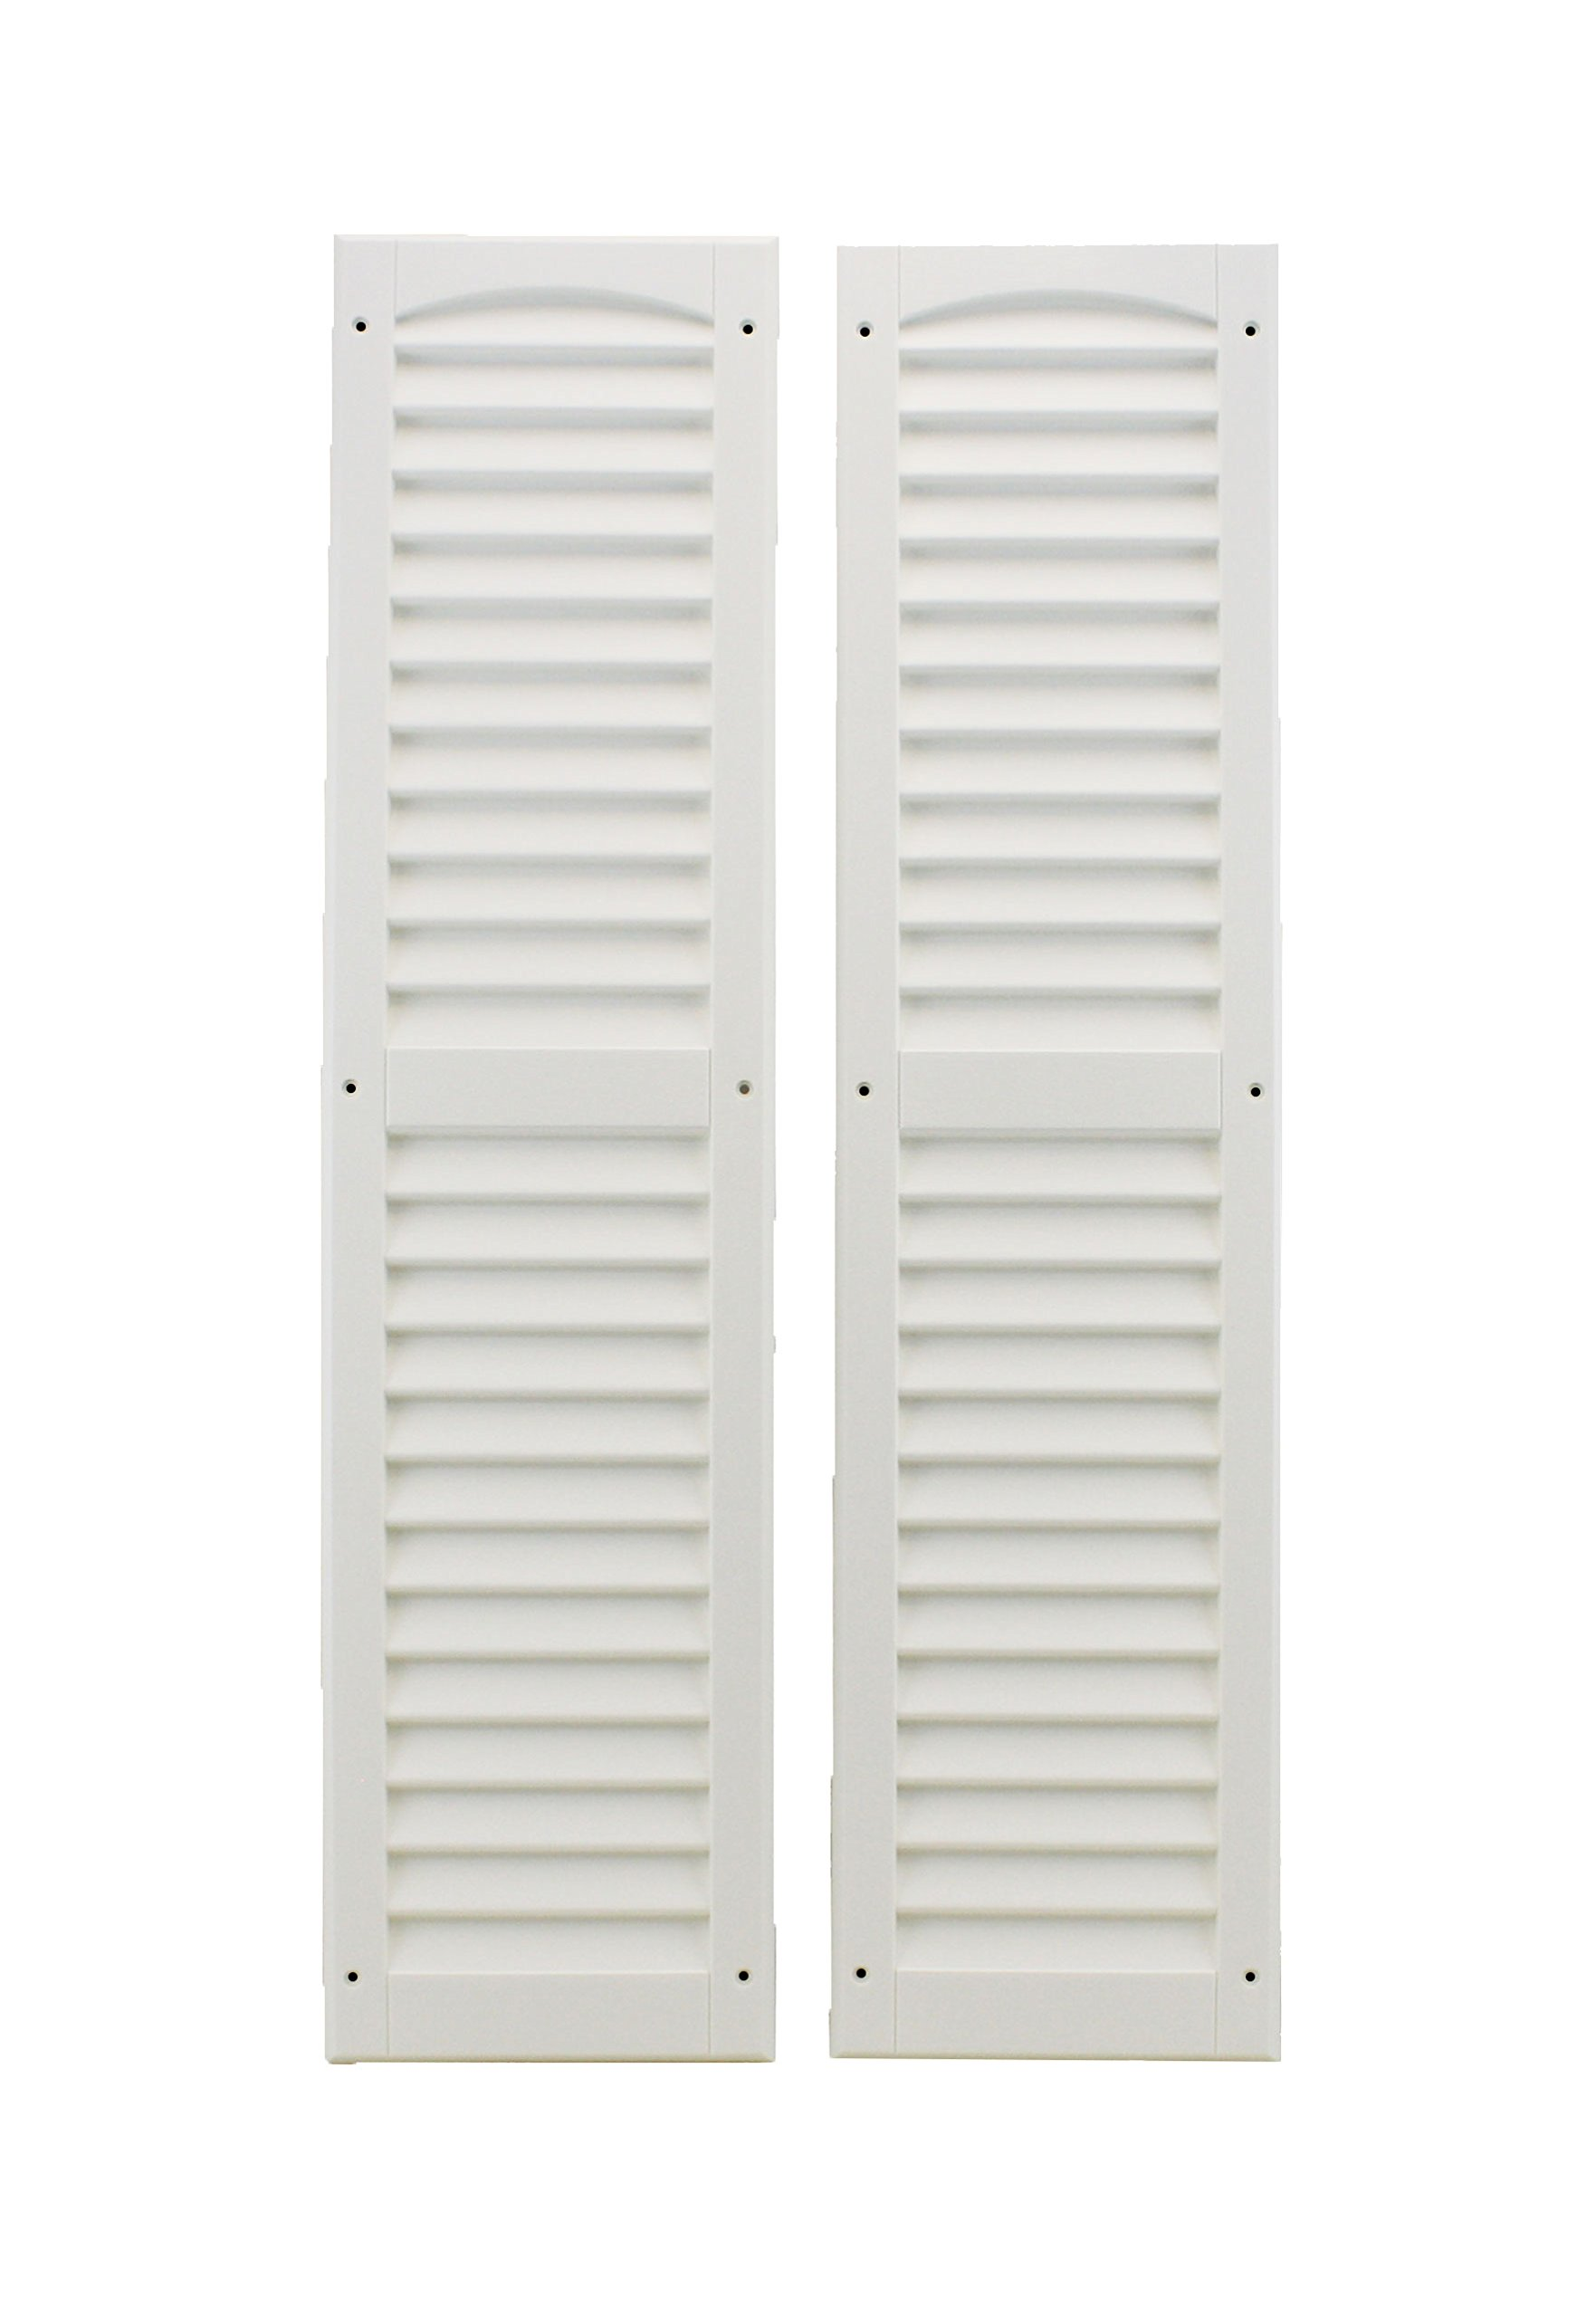 Louvered Shed Shutter or Playhouse Shutter White 9'' X 36'' Sold by The Pair